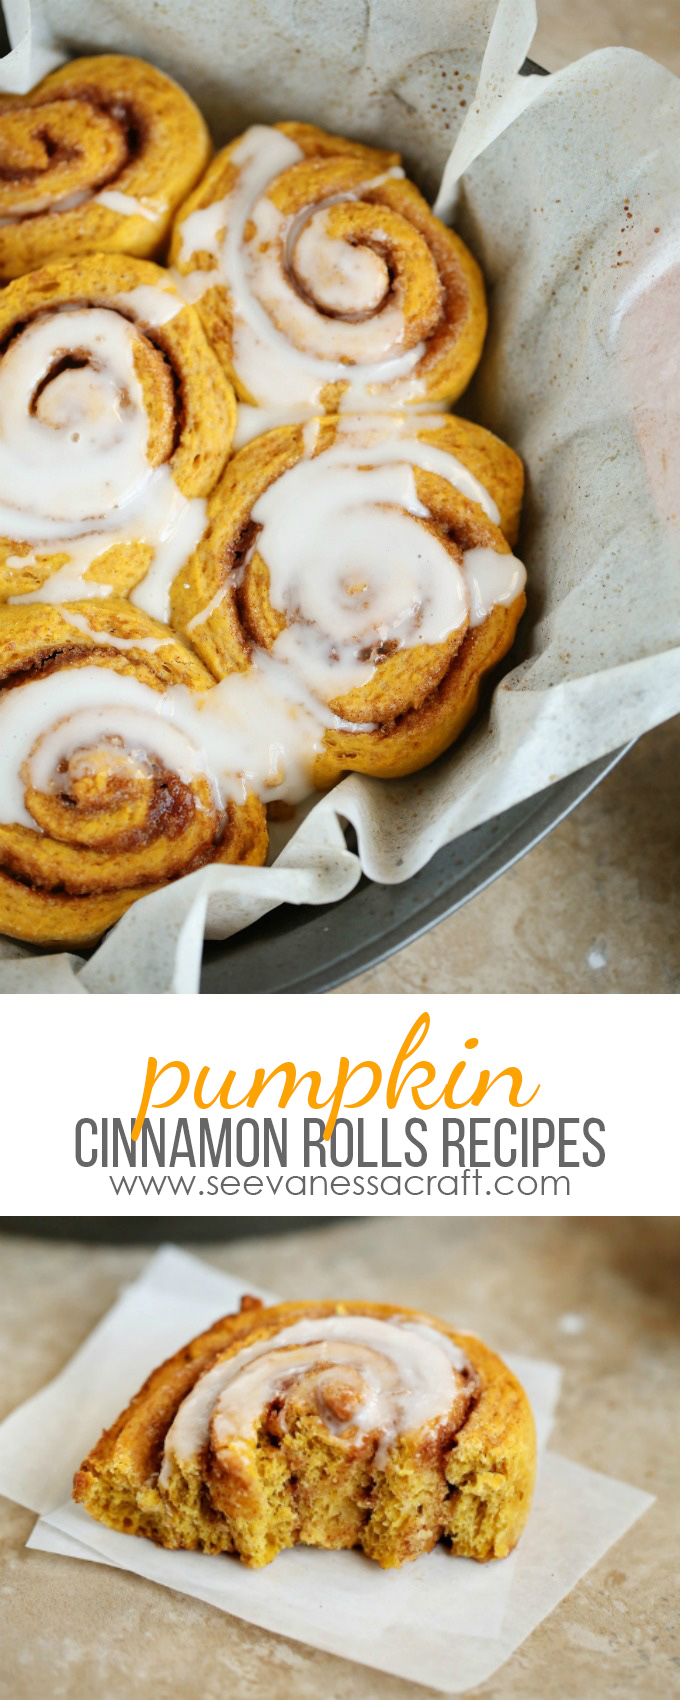 pumpkin-cinnamon-rolls-recipe-copy